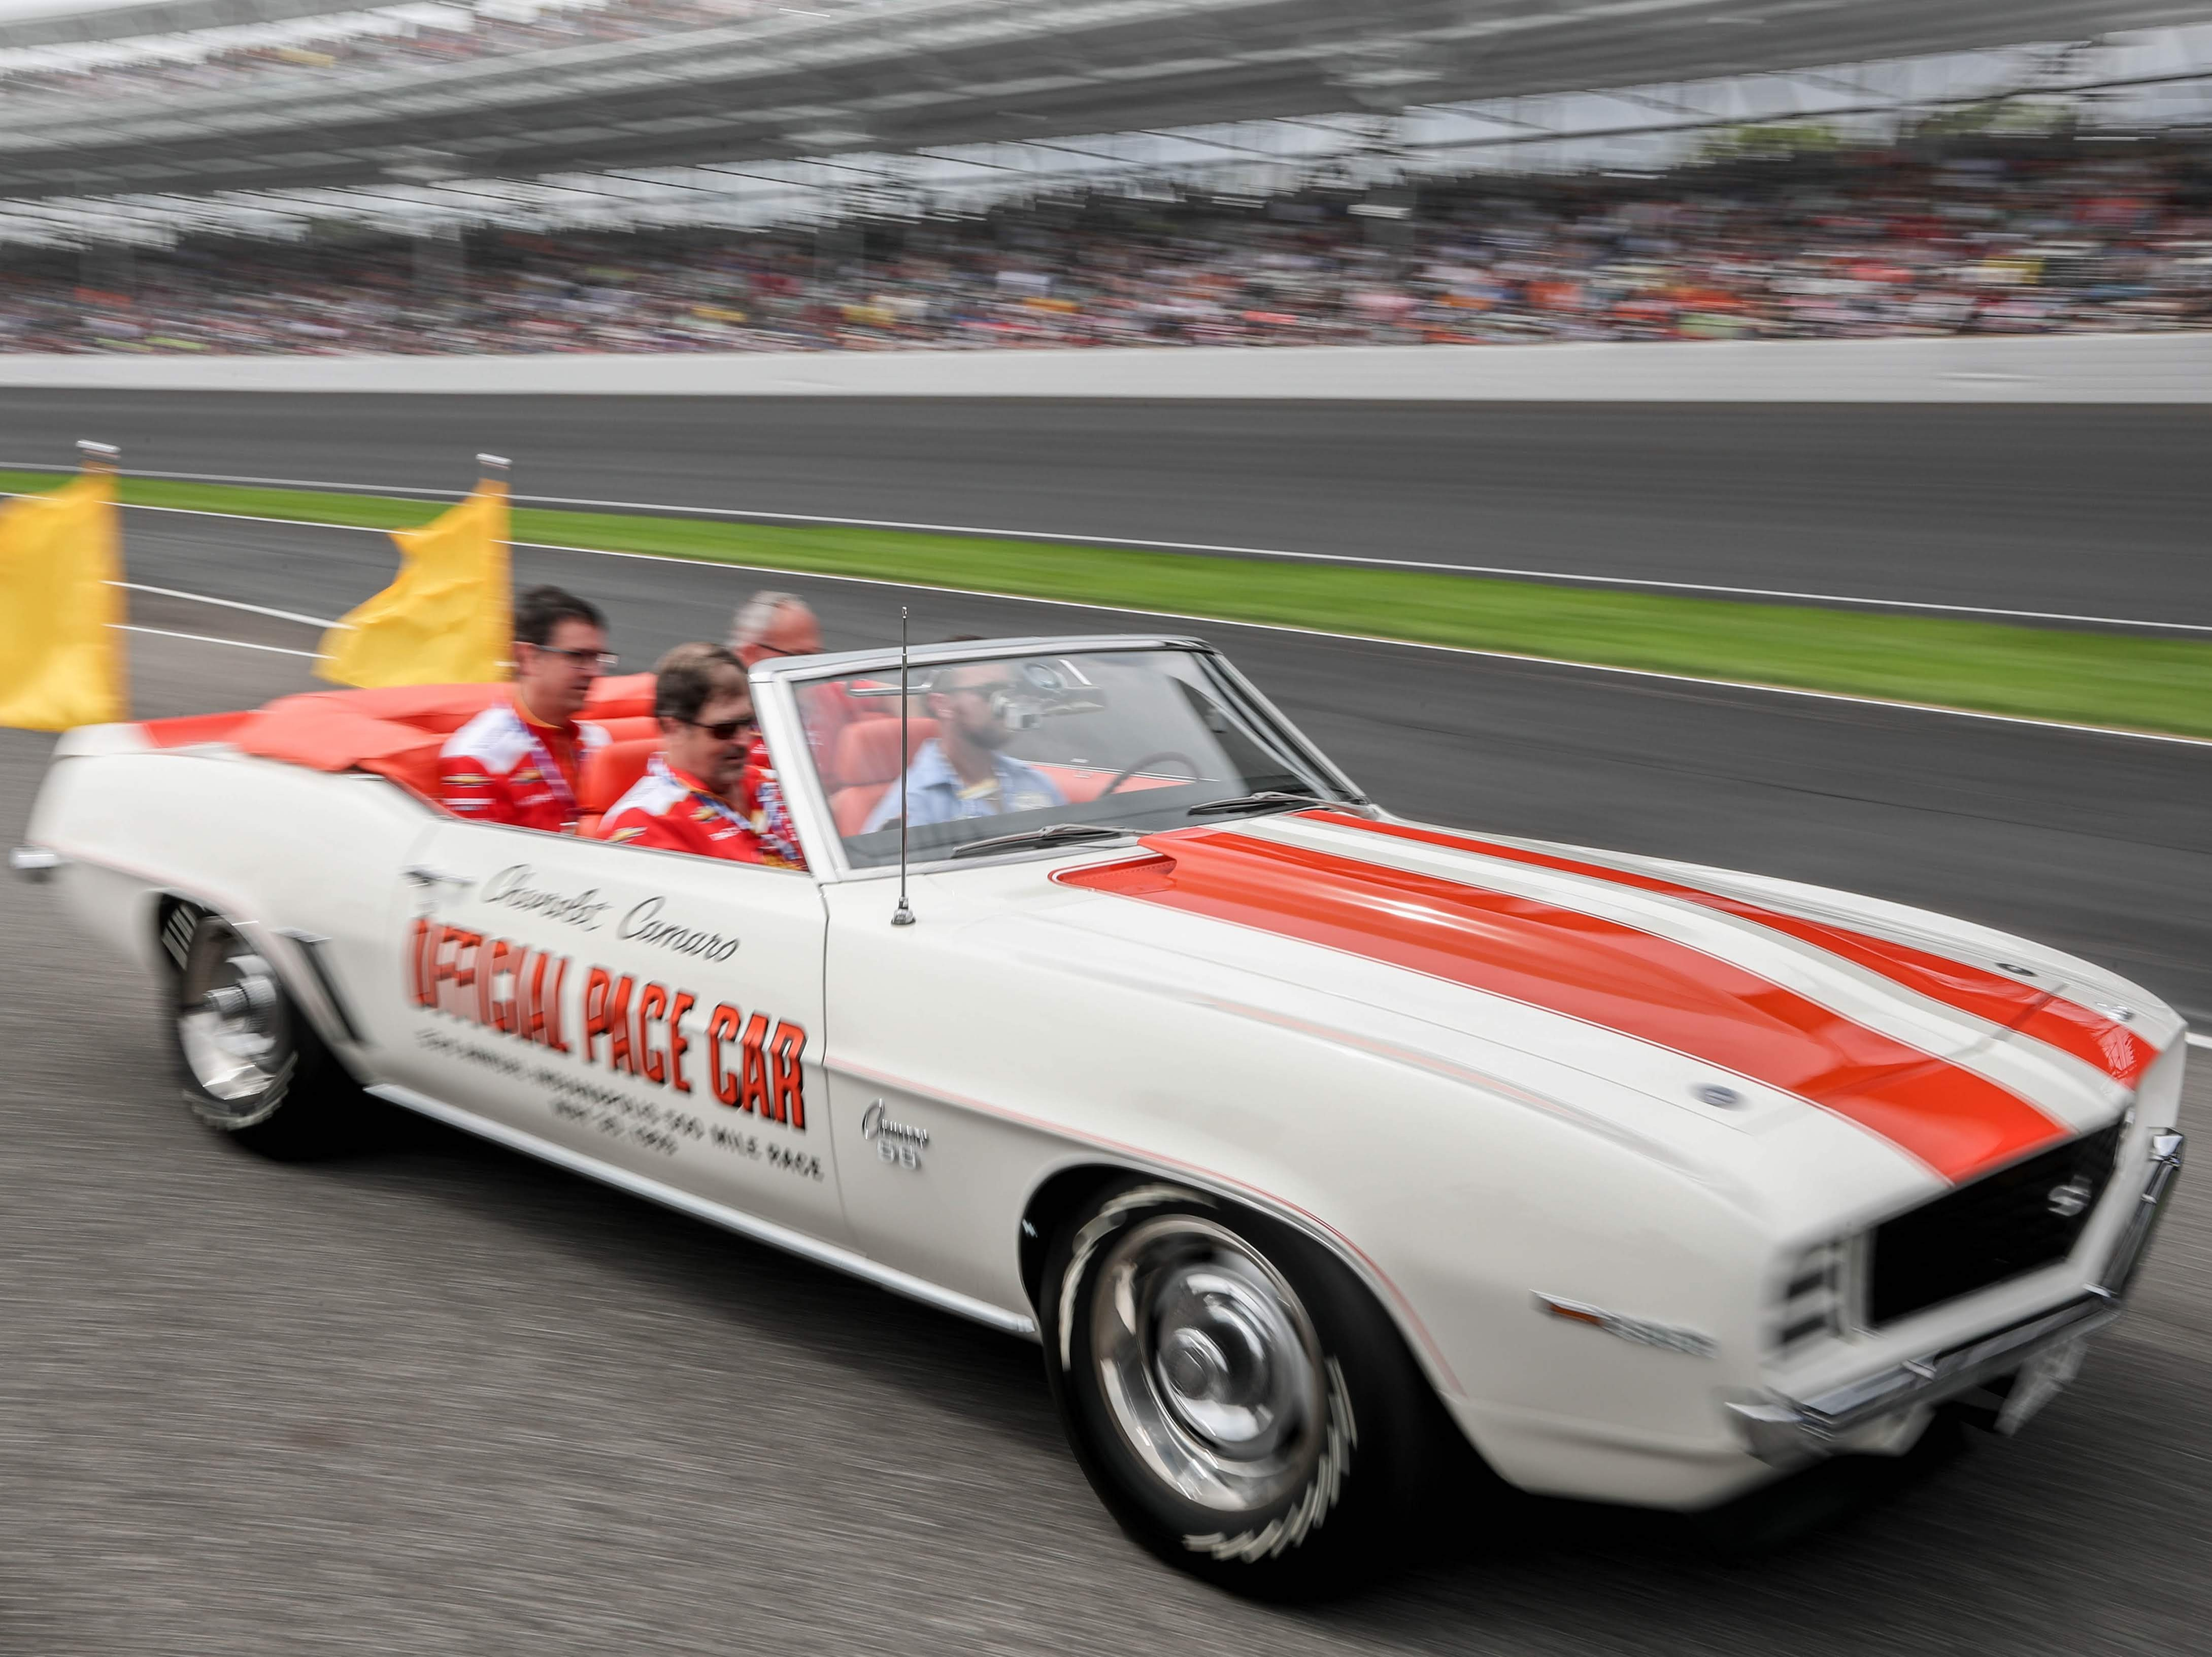 indy-500-pace-car-ride-vip